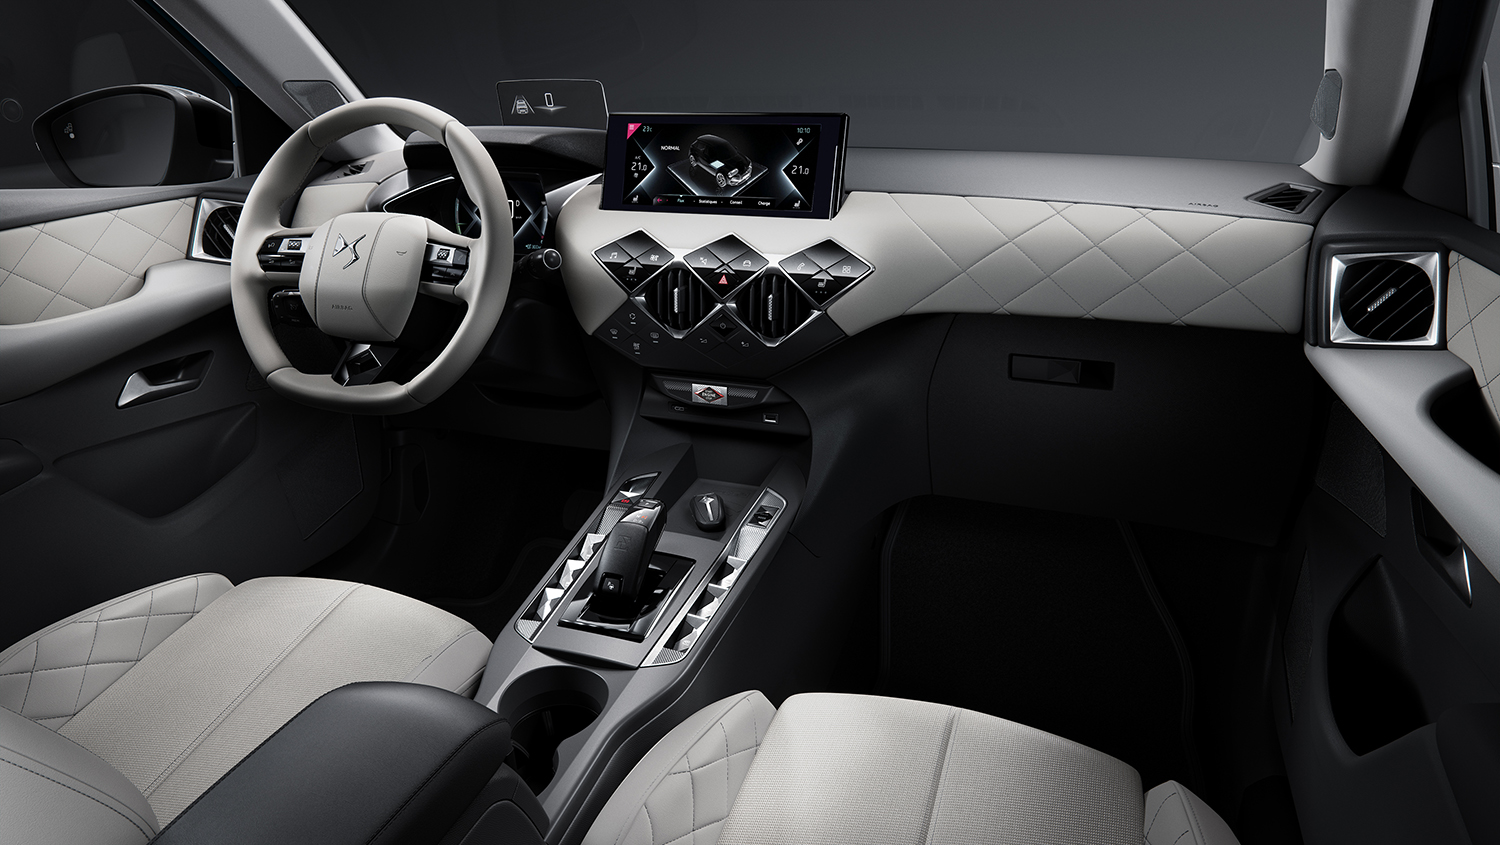 DS3 CROSSBACK E-TENSE dashboard bij Wassink Autogroep